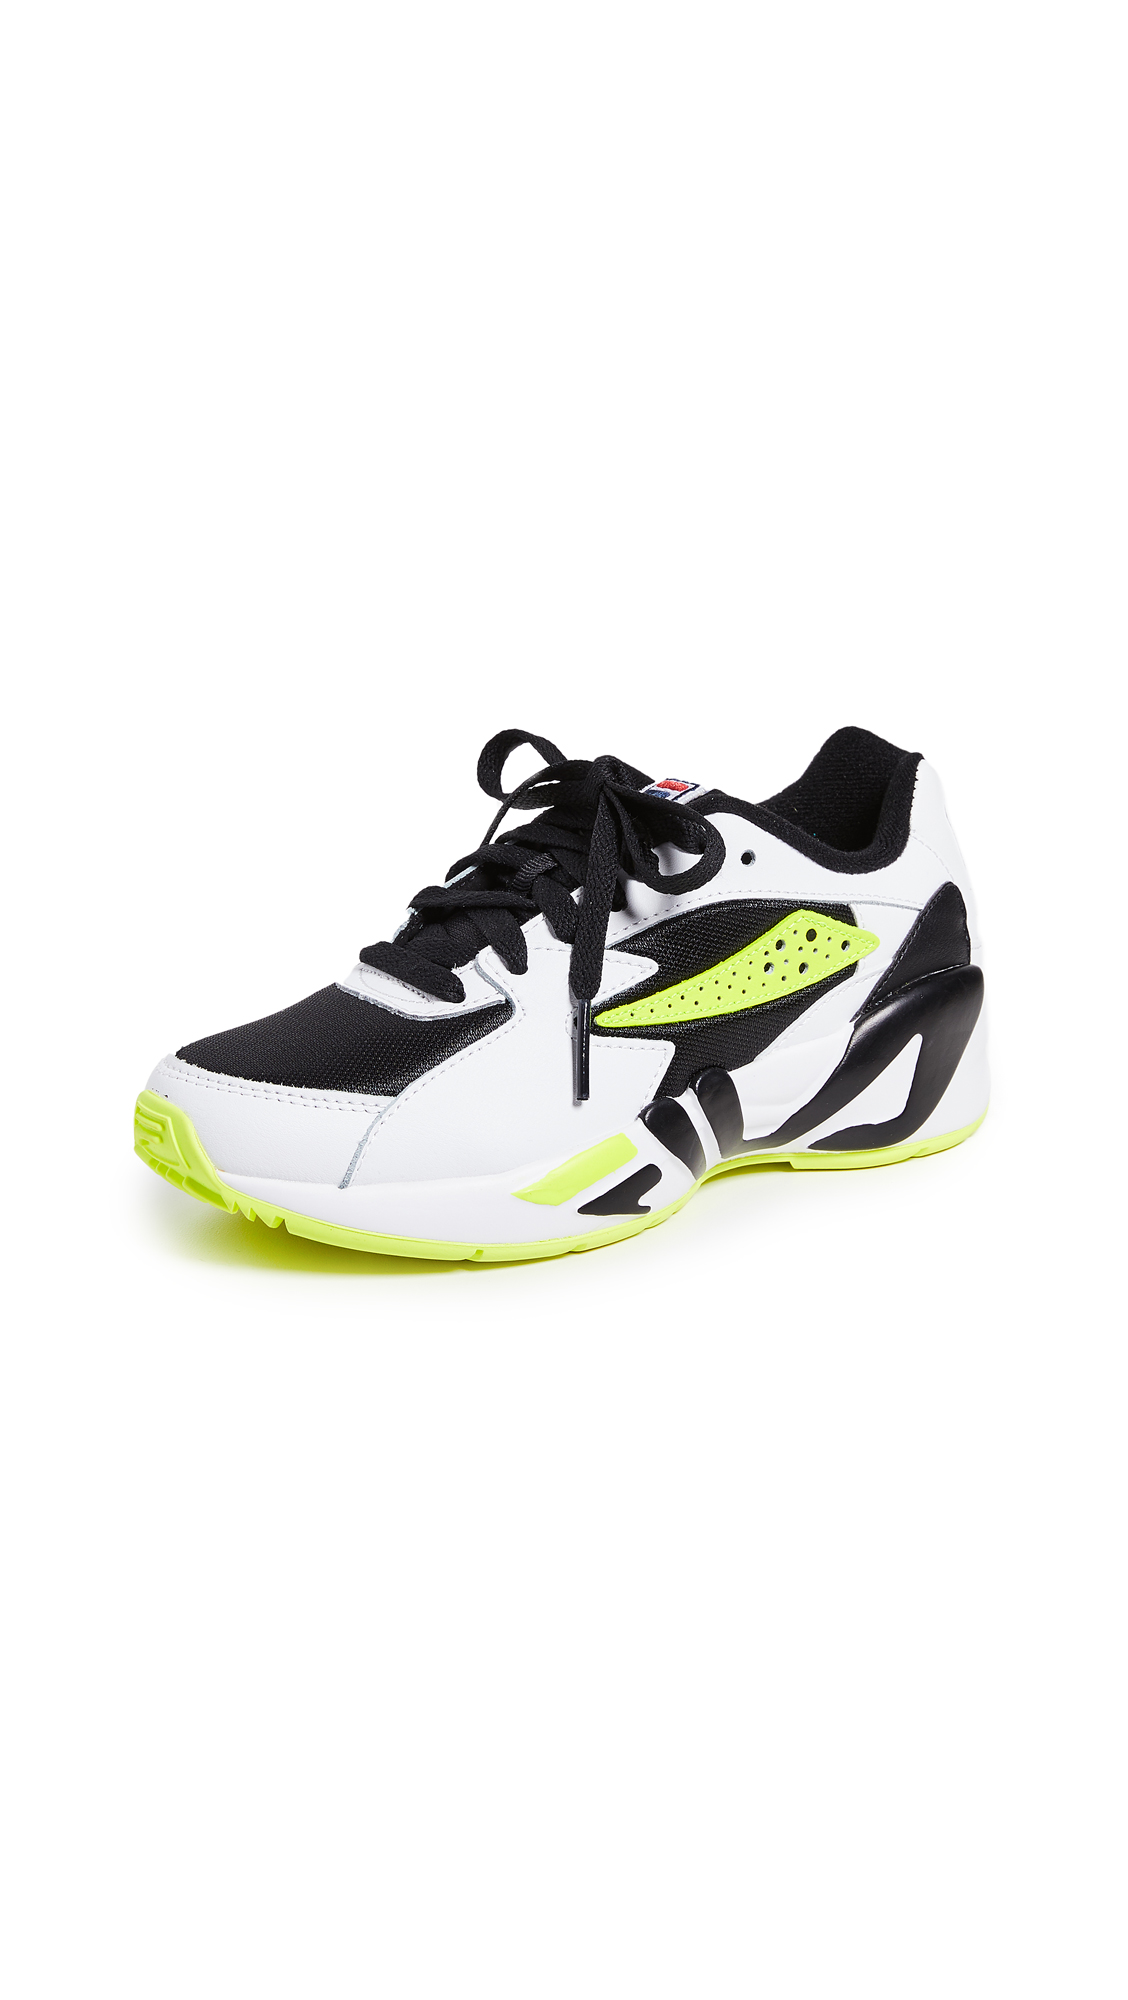 Fila Mindblower Vintage Runners - Black/White/Green